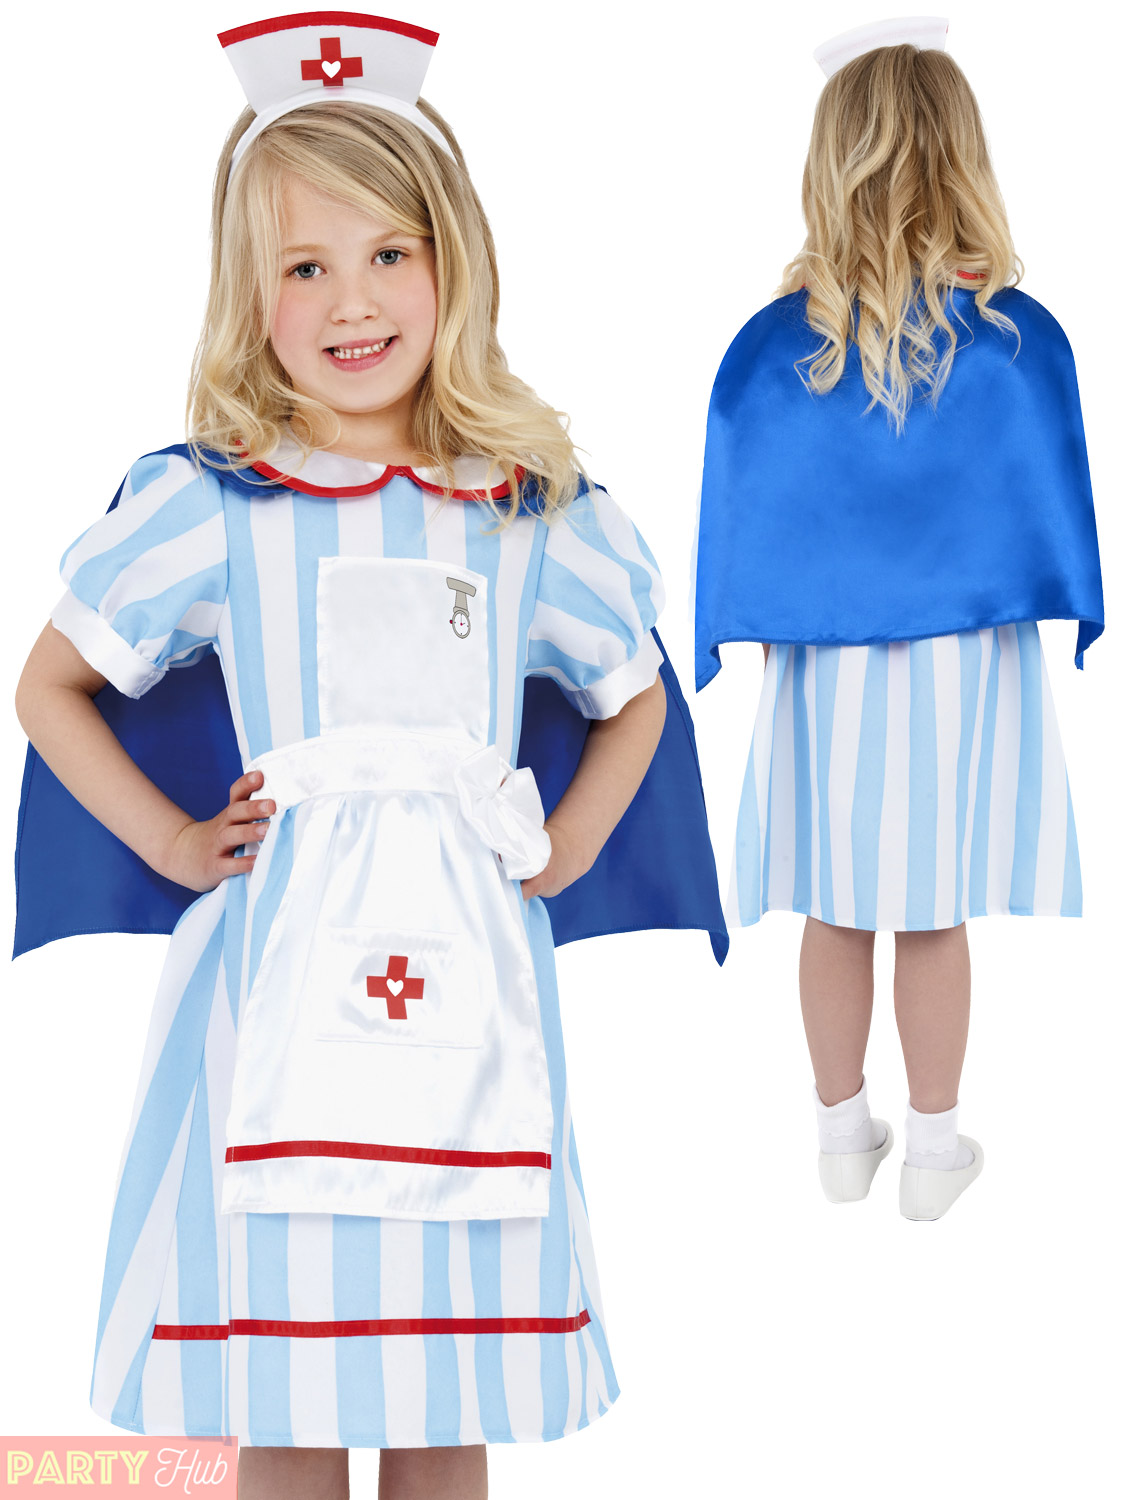 62a60ec4b5994 Smiffy's Children's Vintage Nurse Costume Dress With Cape and Hat ...